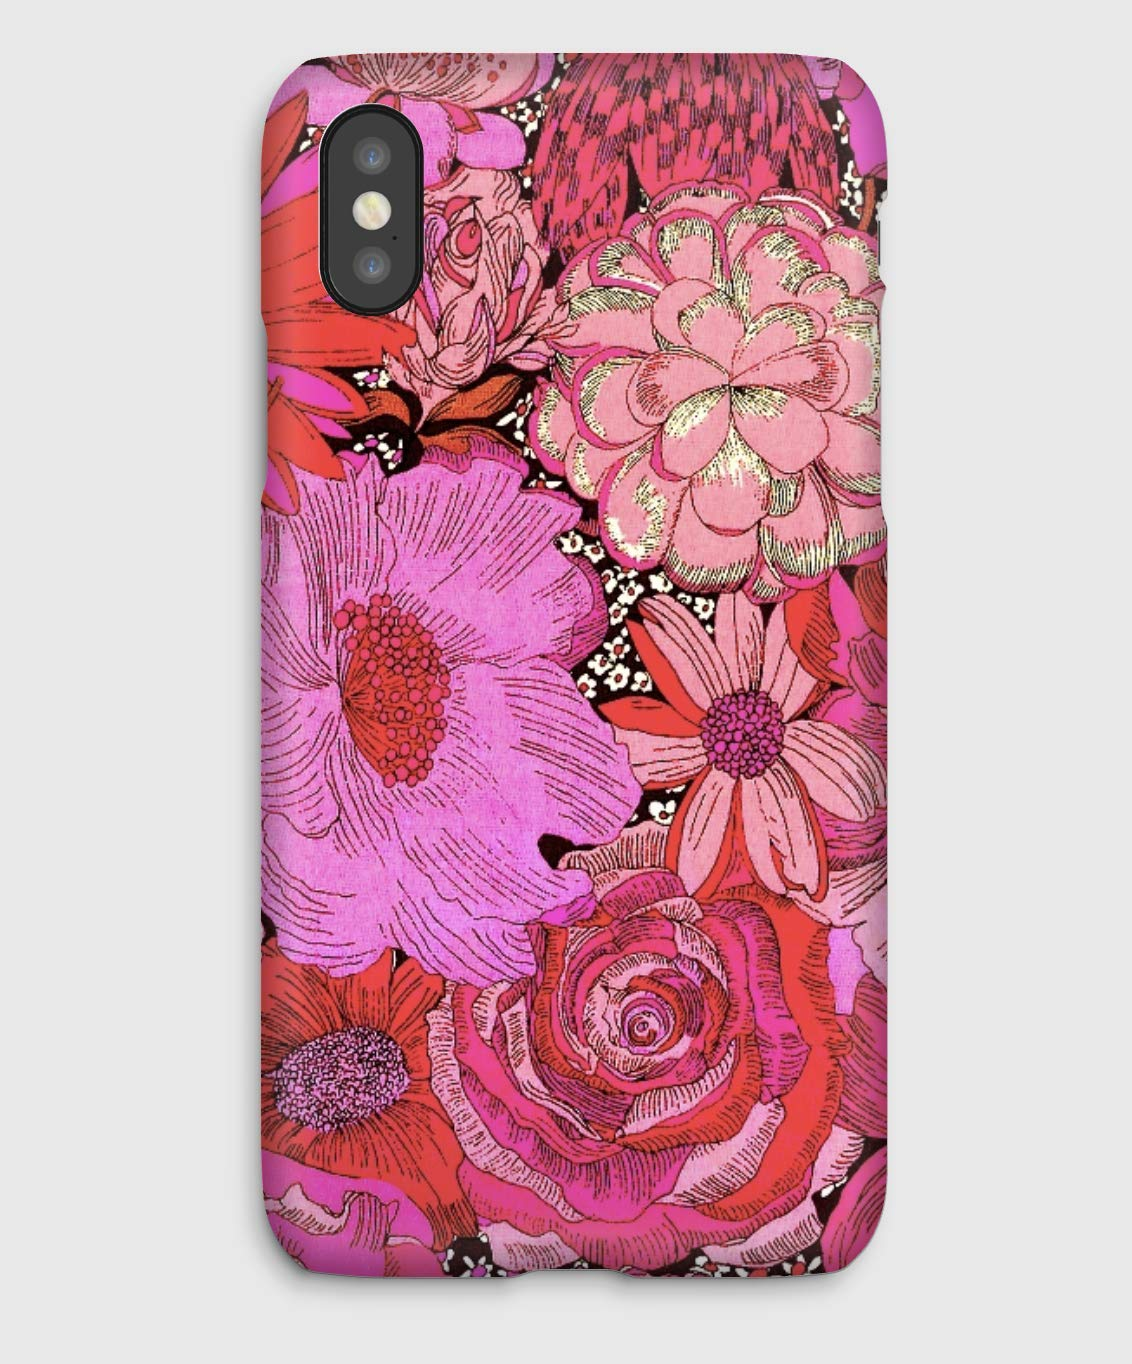 English Field D, coque pour iPhone XS, XS Max, XR, X, 8, 8+, 7, 7+, 6S, 6, 6S+, 6+, 5C, 5, 5S, 5SE, 4S, 4,